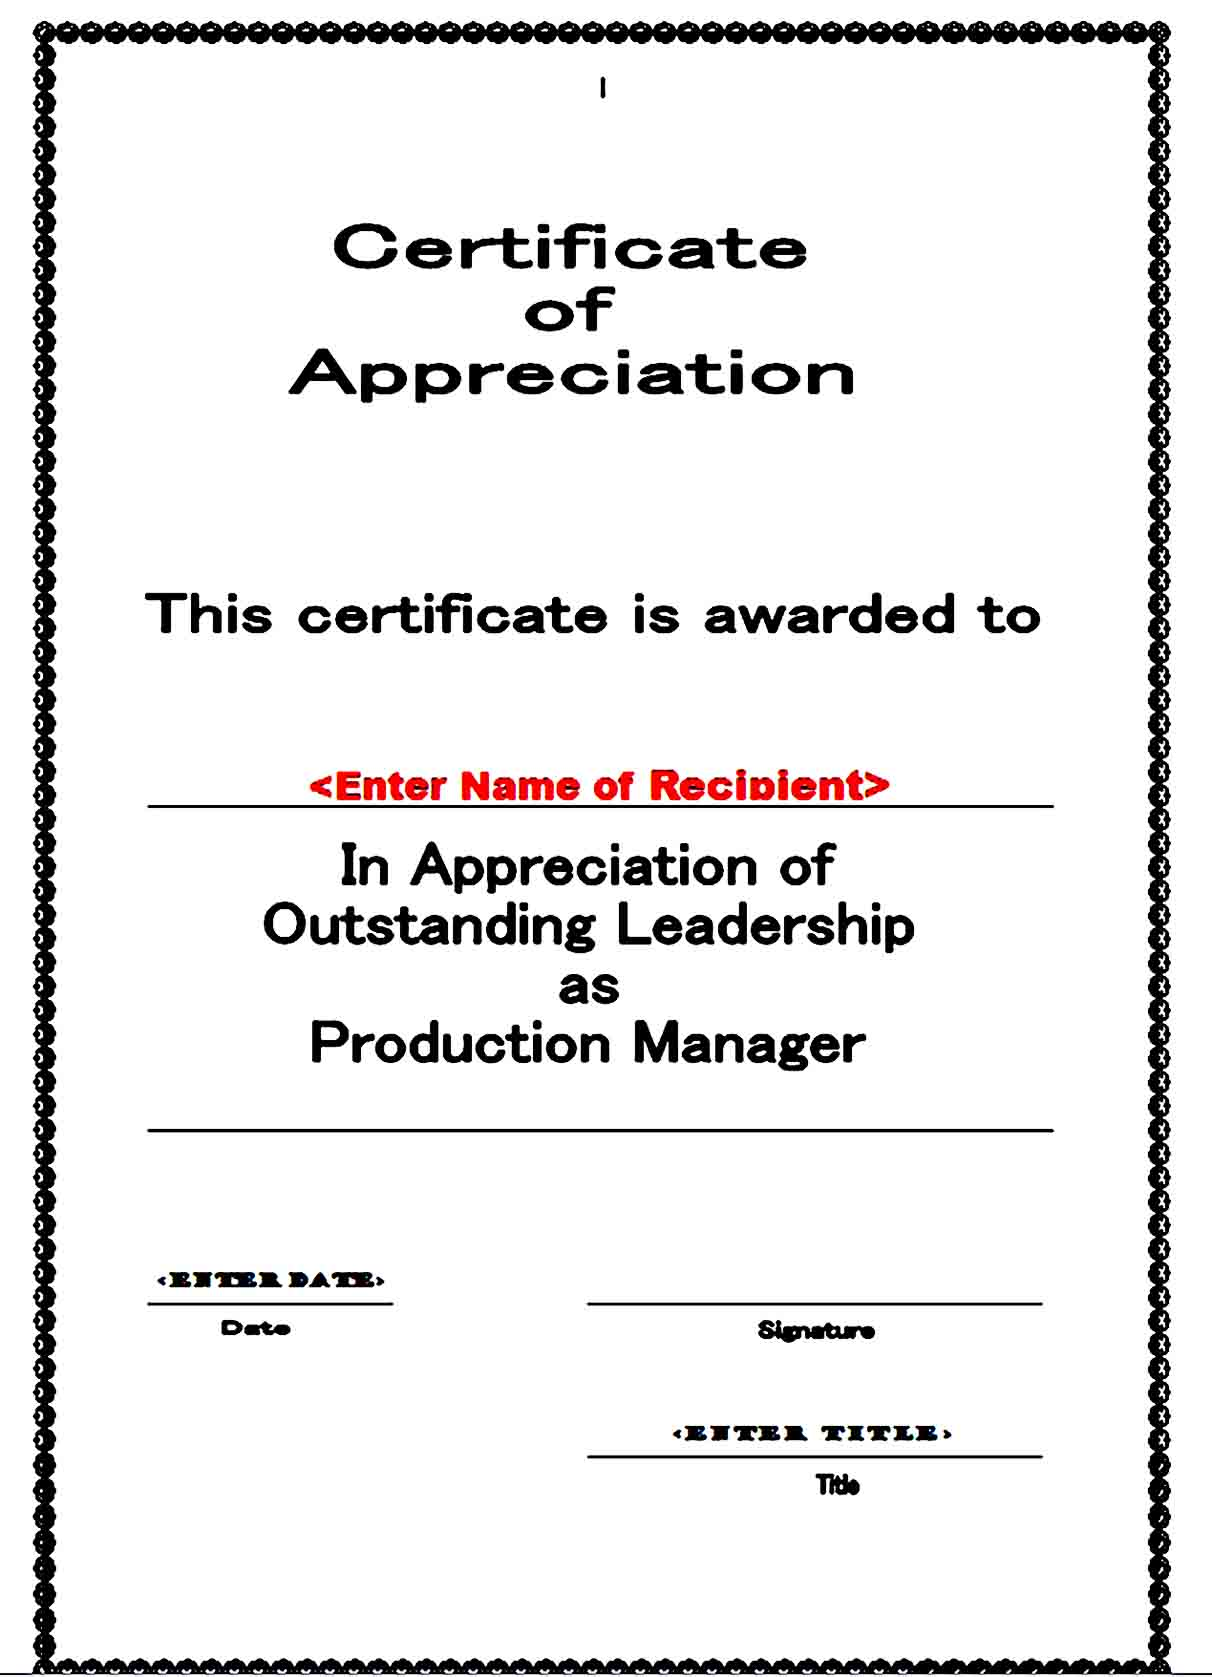 Certificate of Appreciation 11